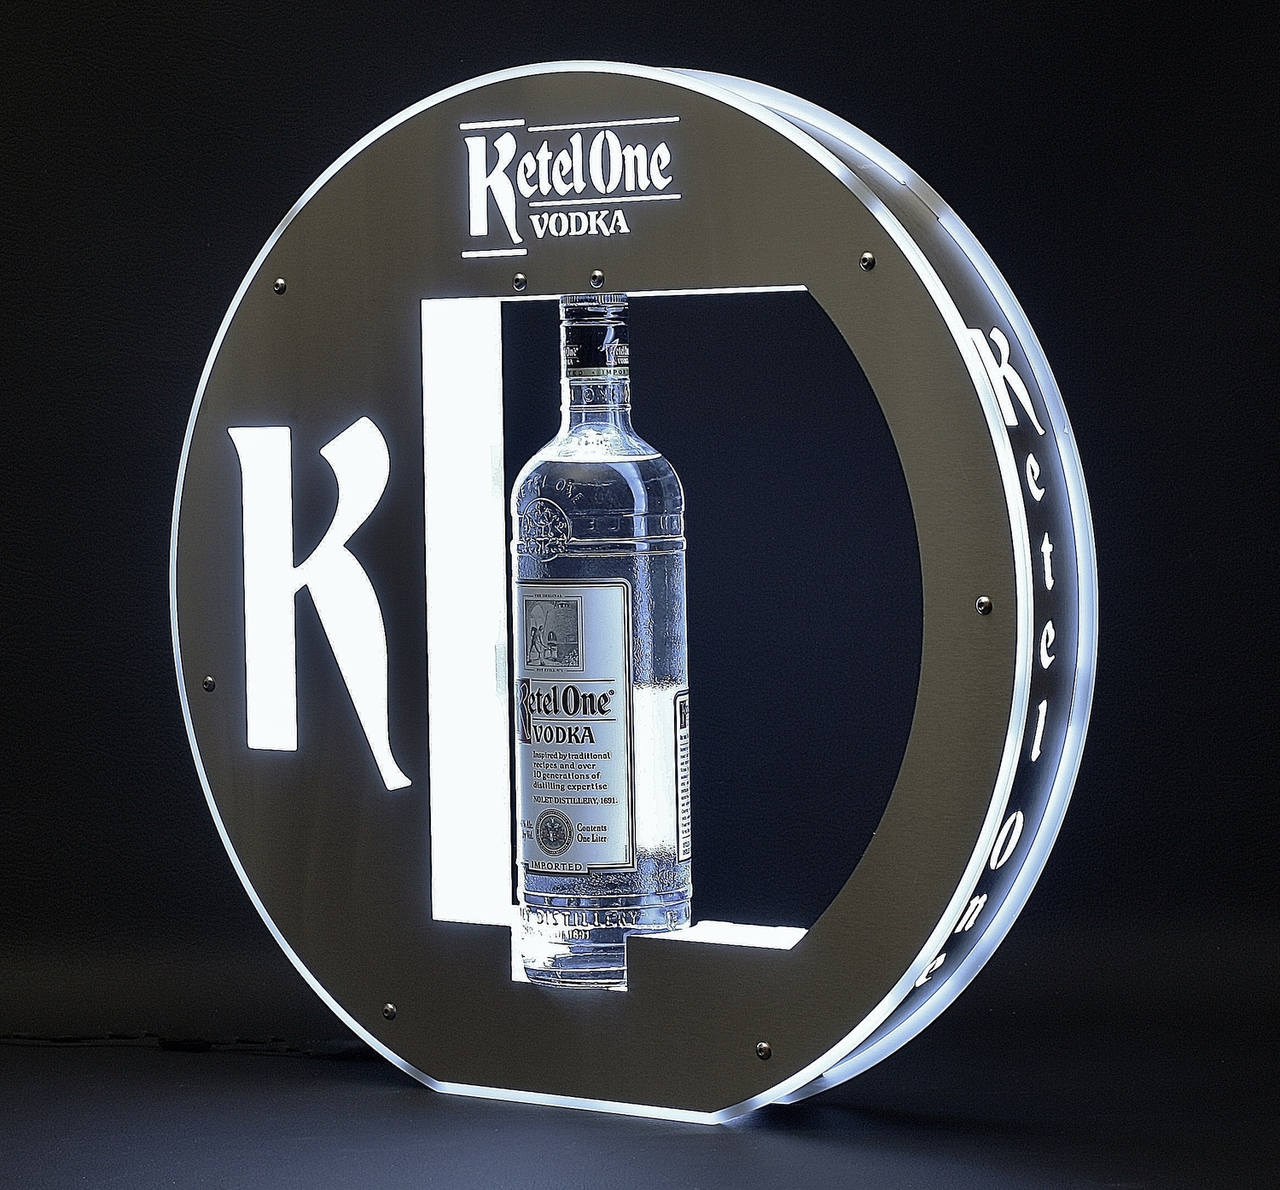 lunar-ketel-one-ciroc-led-bottle-ring-front-patron-bottle-presenter-bottle-service-vip-service-bottle-glorifier-nightclub-nightclubshop.jpg